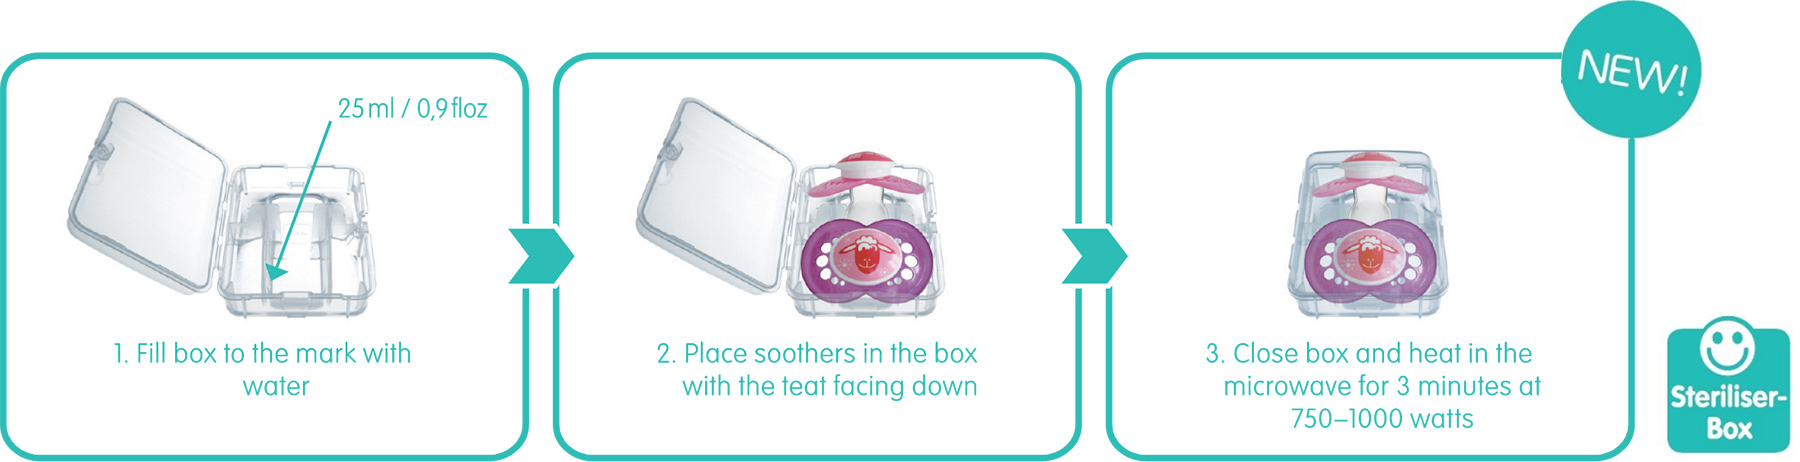 Pacifier Ease and Convenience IMG